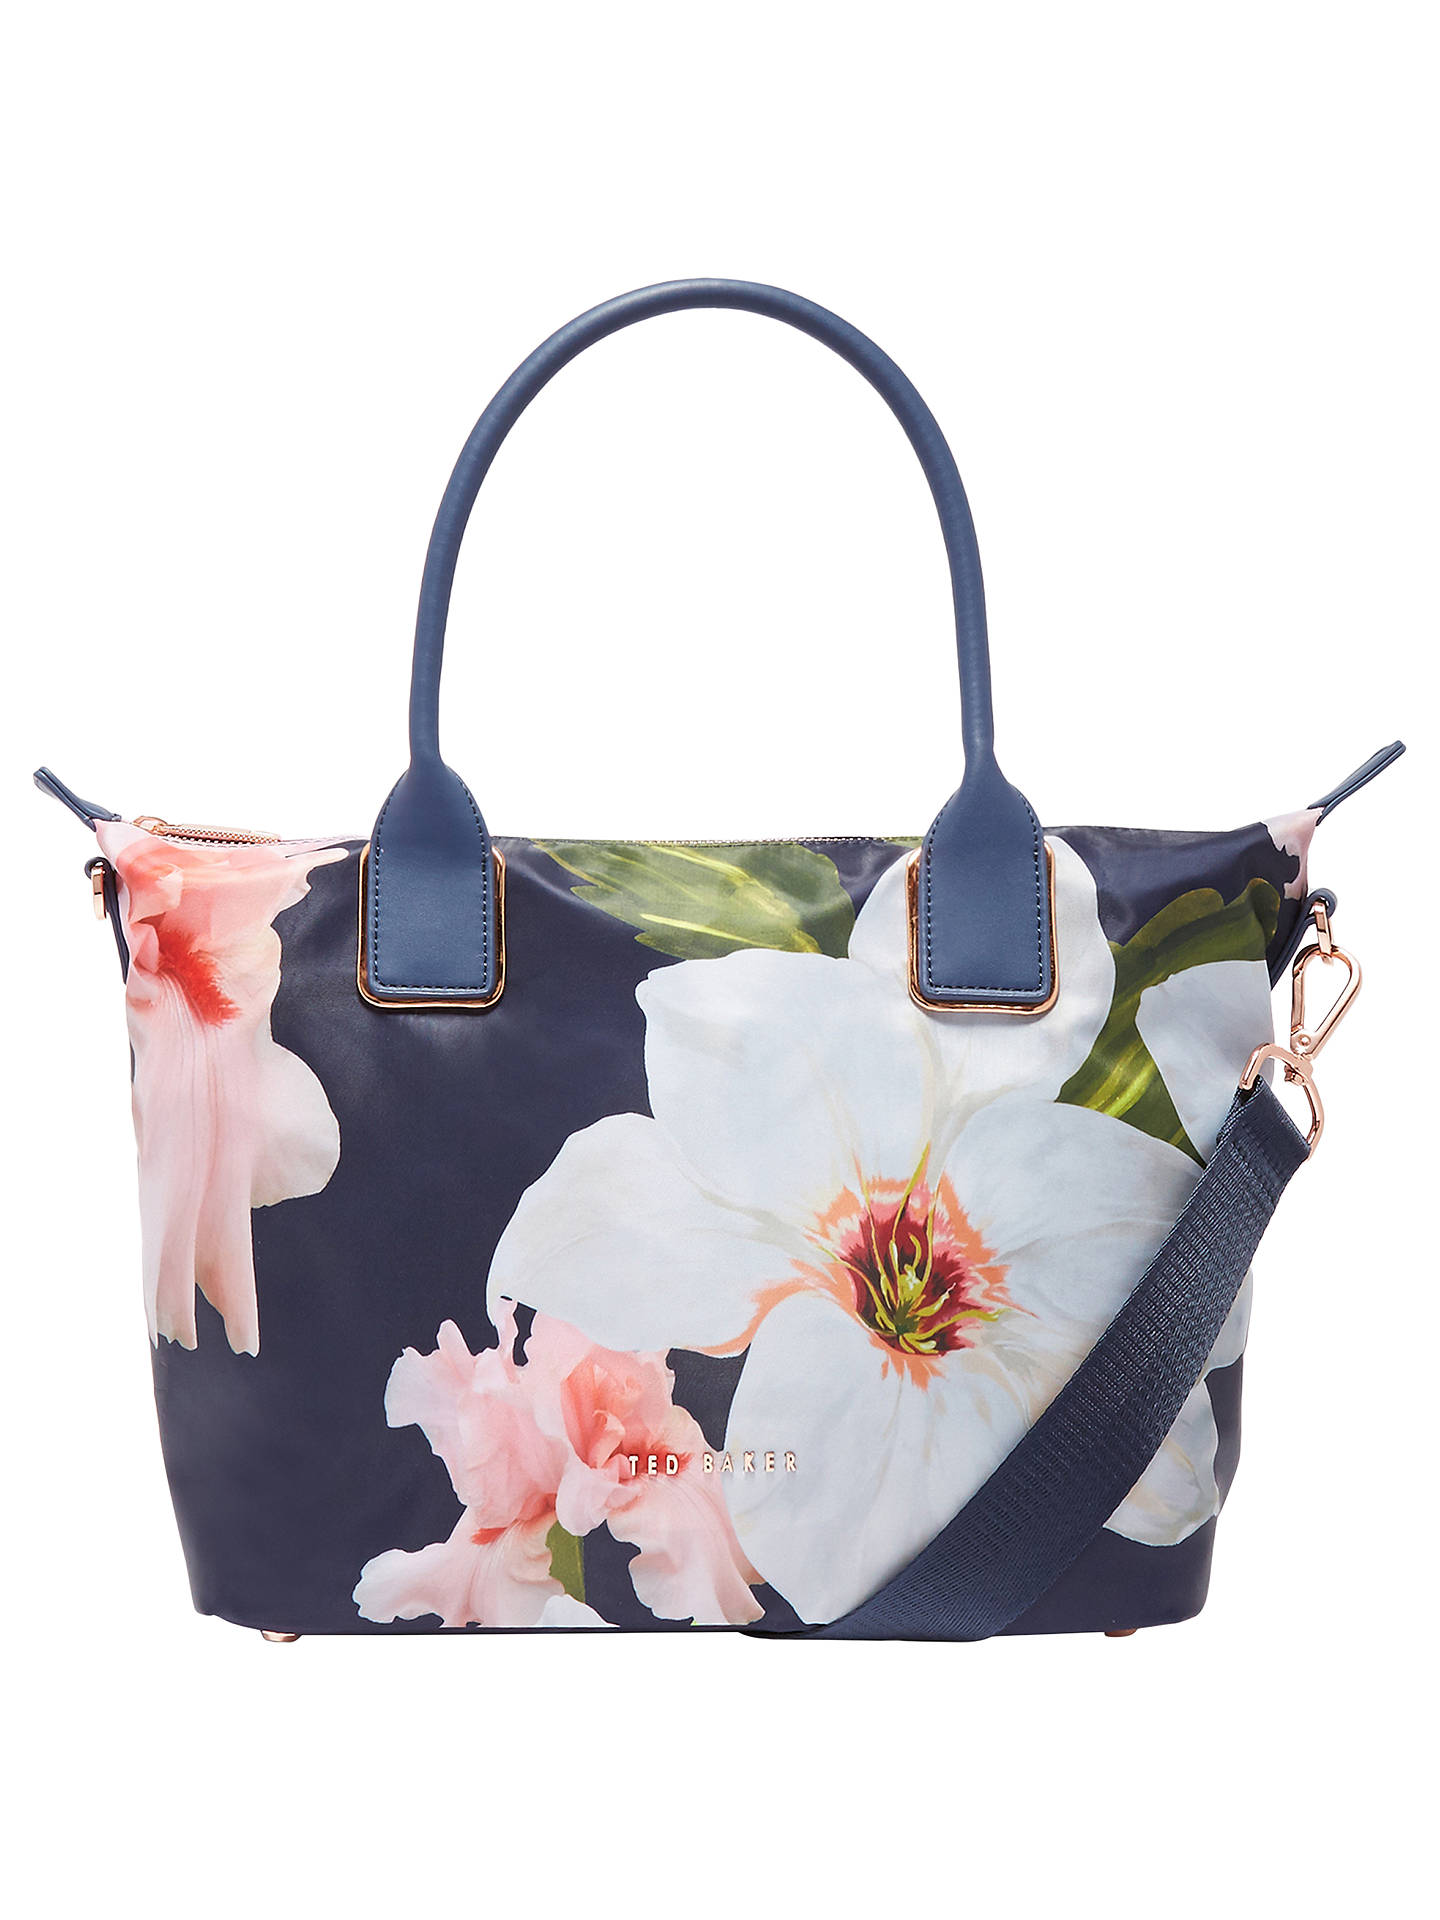 5b645cc82f59d1 Buy Ted Baker Orsja Chatsworth Small Tote Bag